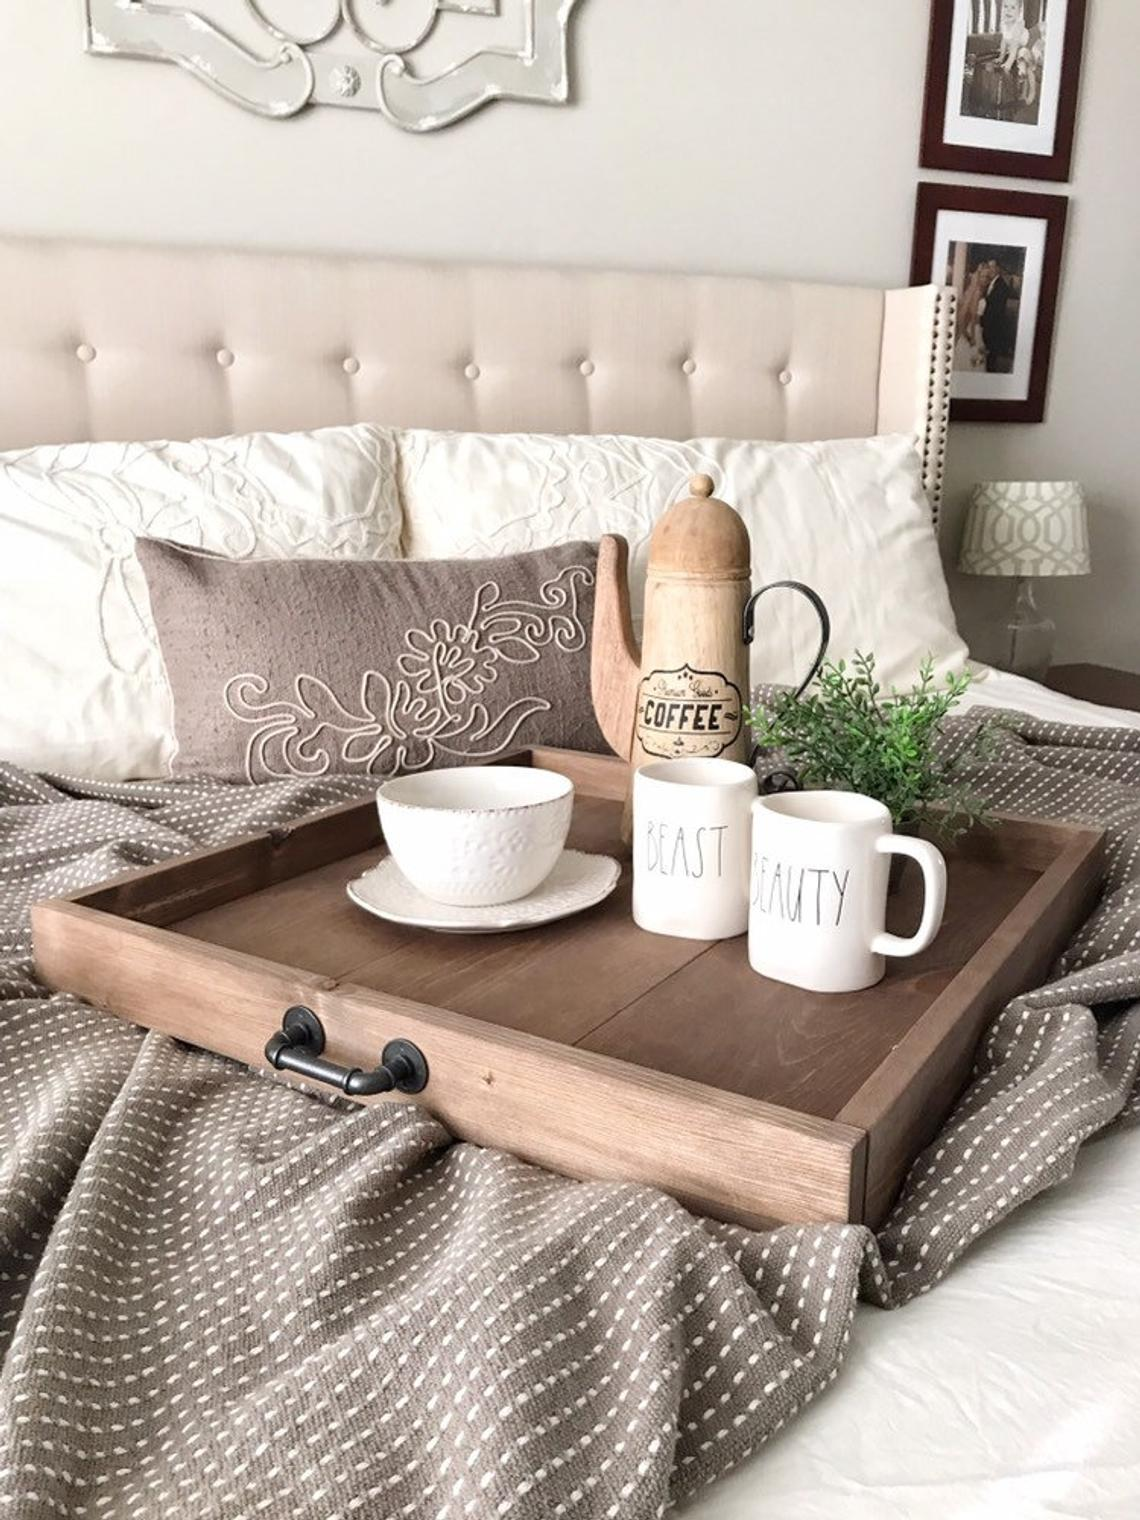 Large Square Ottoman Wood Rustic Centerpiece Rustic Wooden Serving Tray Coffee Table Tray Wood Tray More Options Buy Distressed Wood Serving Tray Antique Wood Serving Trays Unfinished Wood Trays Product On Alibaba Com